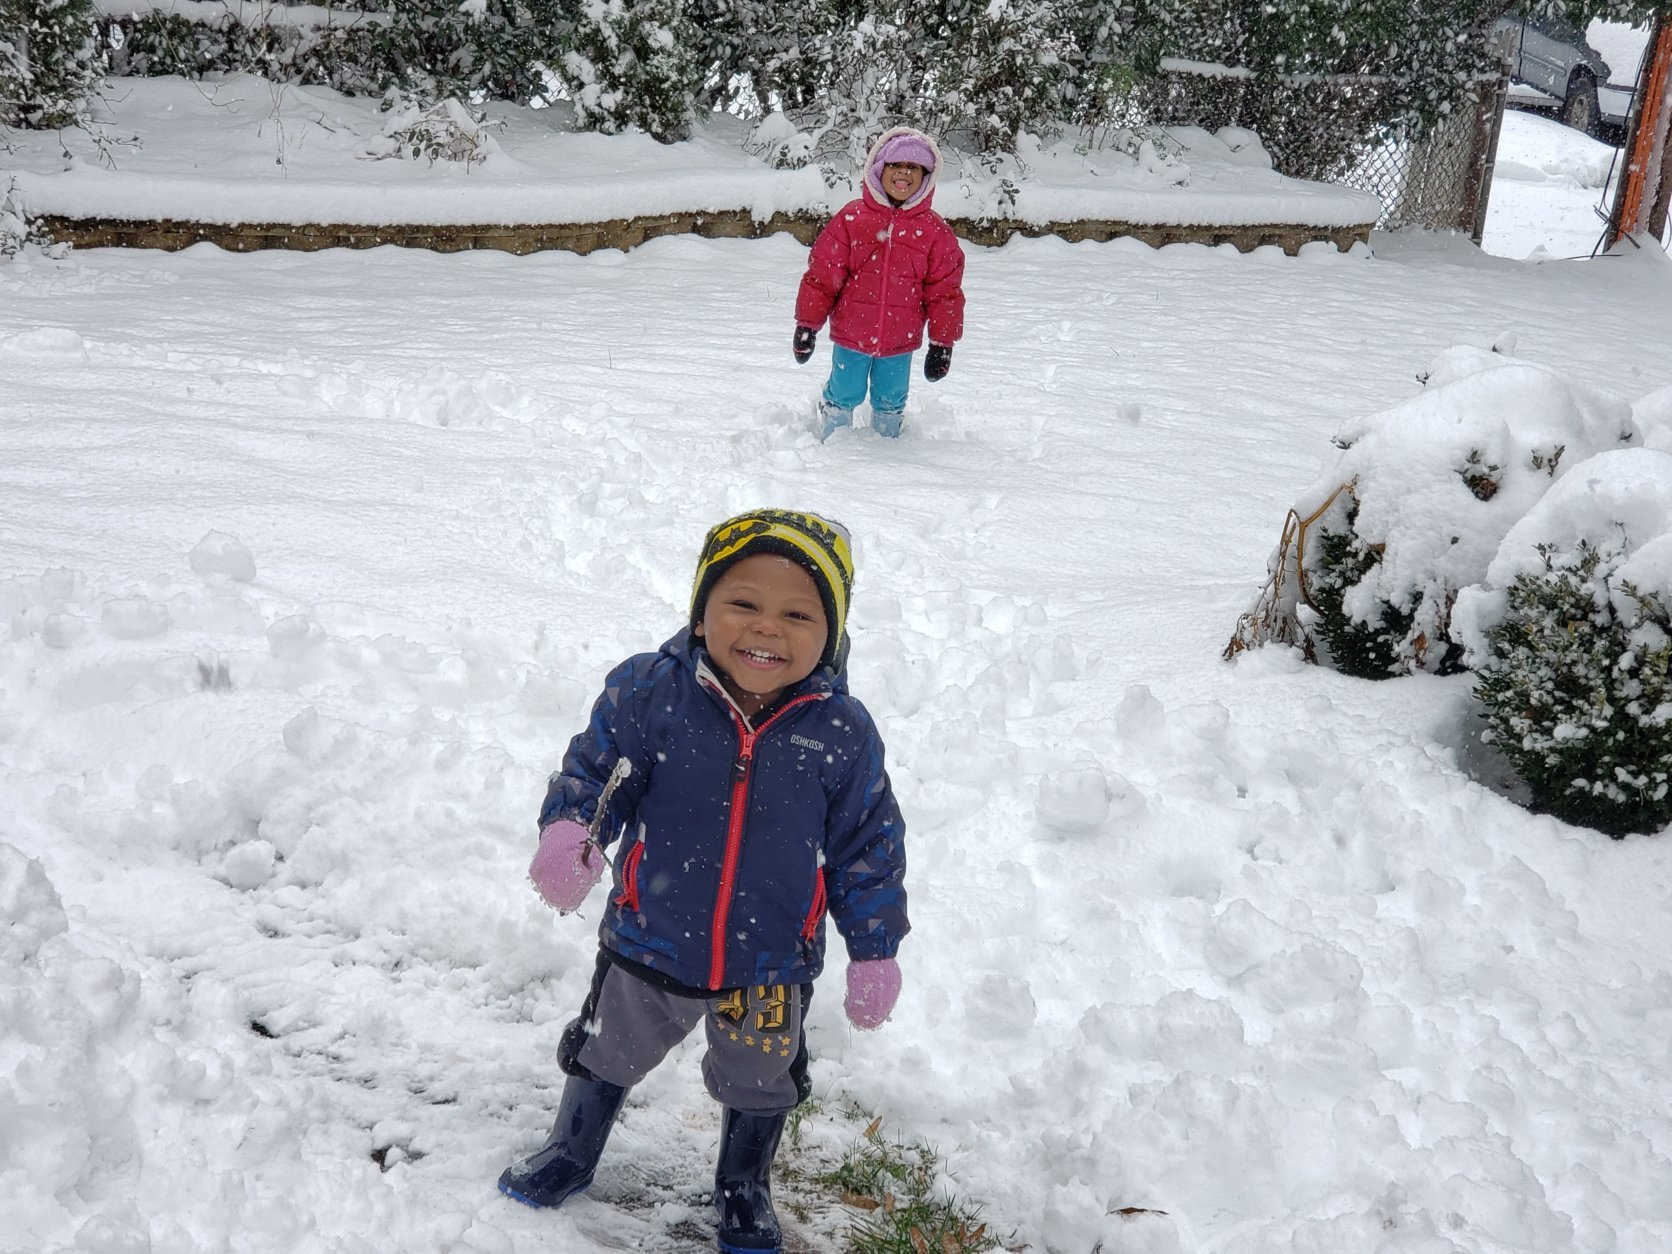 Young kids play in the snow Monday, Jan. 14, 2019. (Courtesy Mishell Dickson)